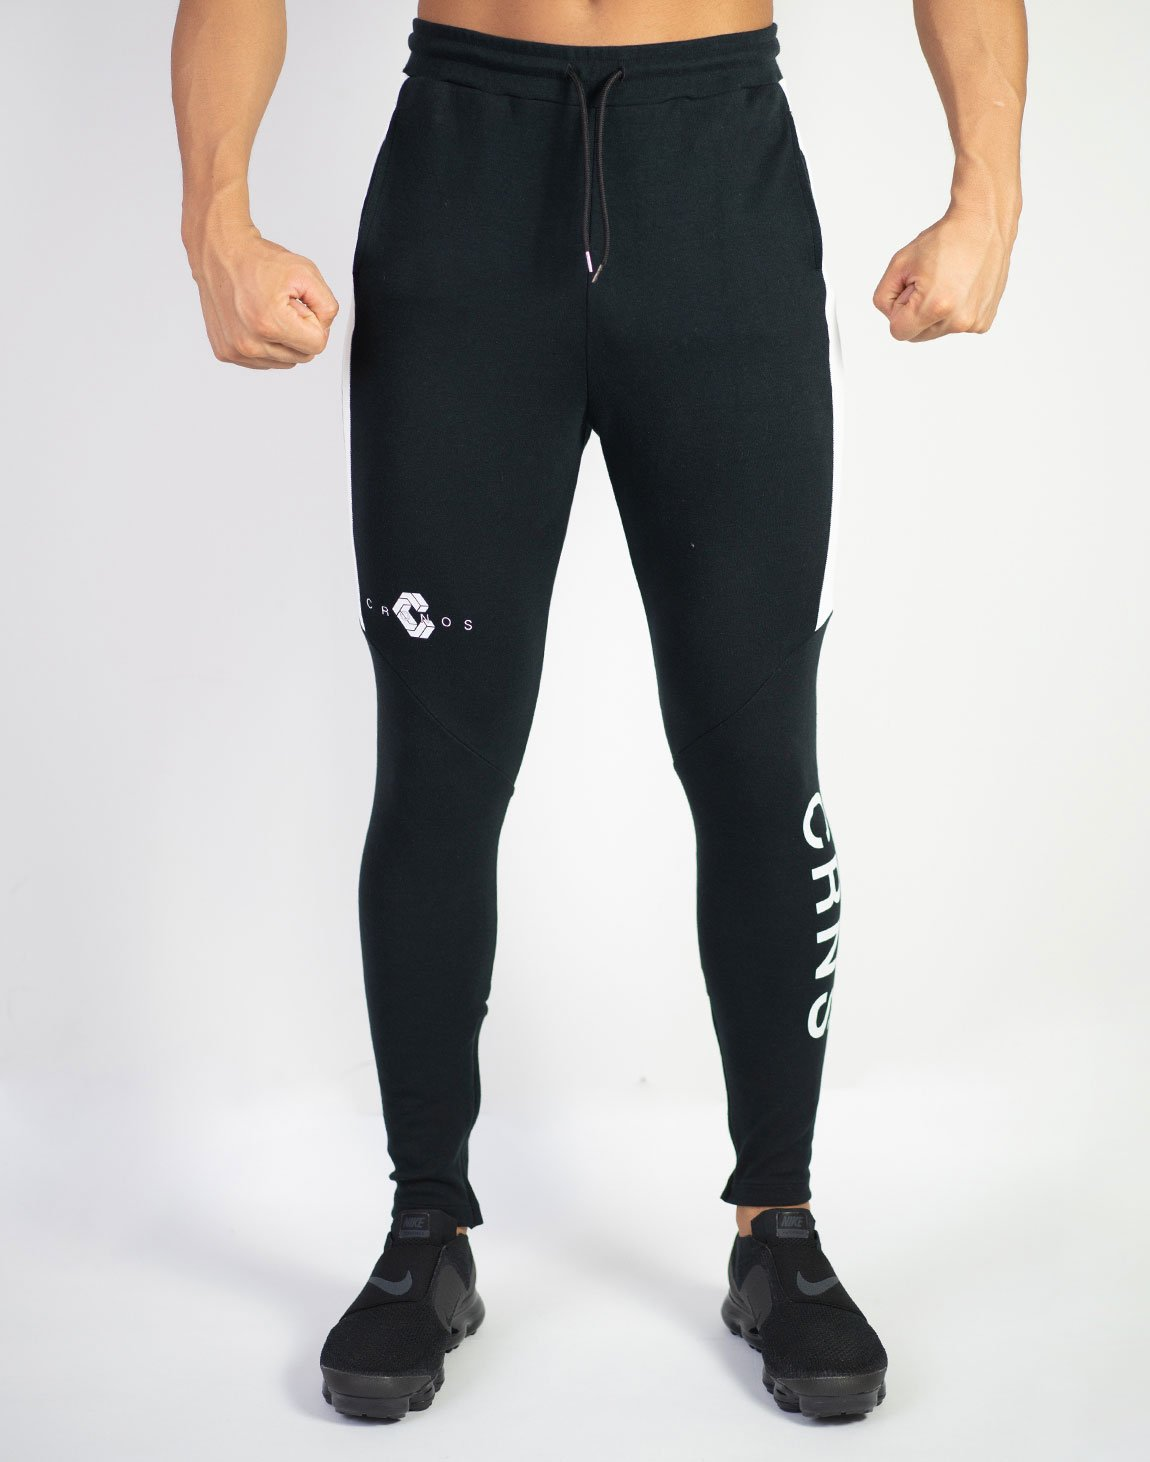 <img class='new_mark_img1' src='https://img.shop-pro.jp/img/new/icons1.gif' style='border:none;display:inline;margin:0px;padding:0px;width:auto;' />CRNS Half Line Pants  BLACK